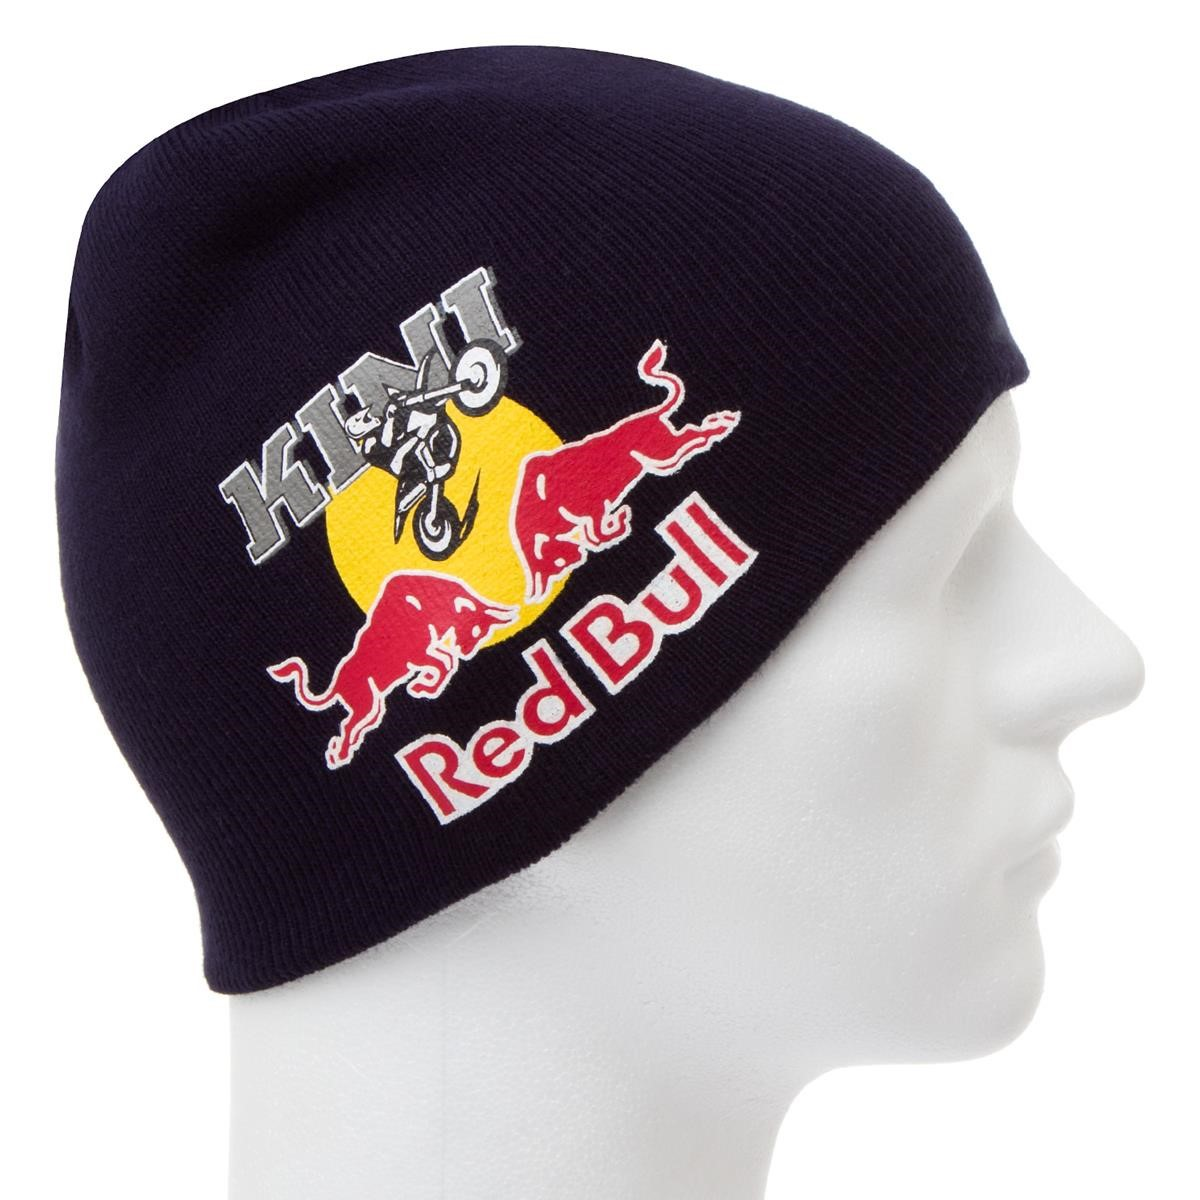 kini red bull beanie m tze double face navy grey wendbar. Black Bedroom Furniture Sets. Home Design Ideas